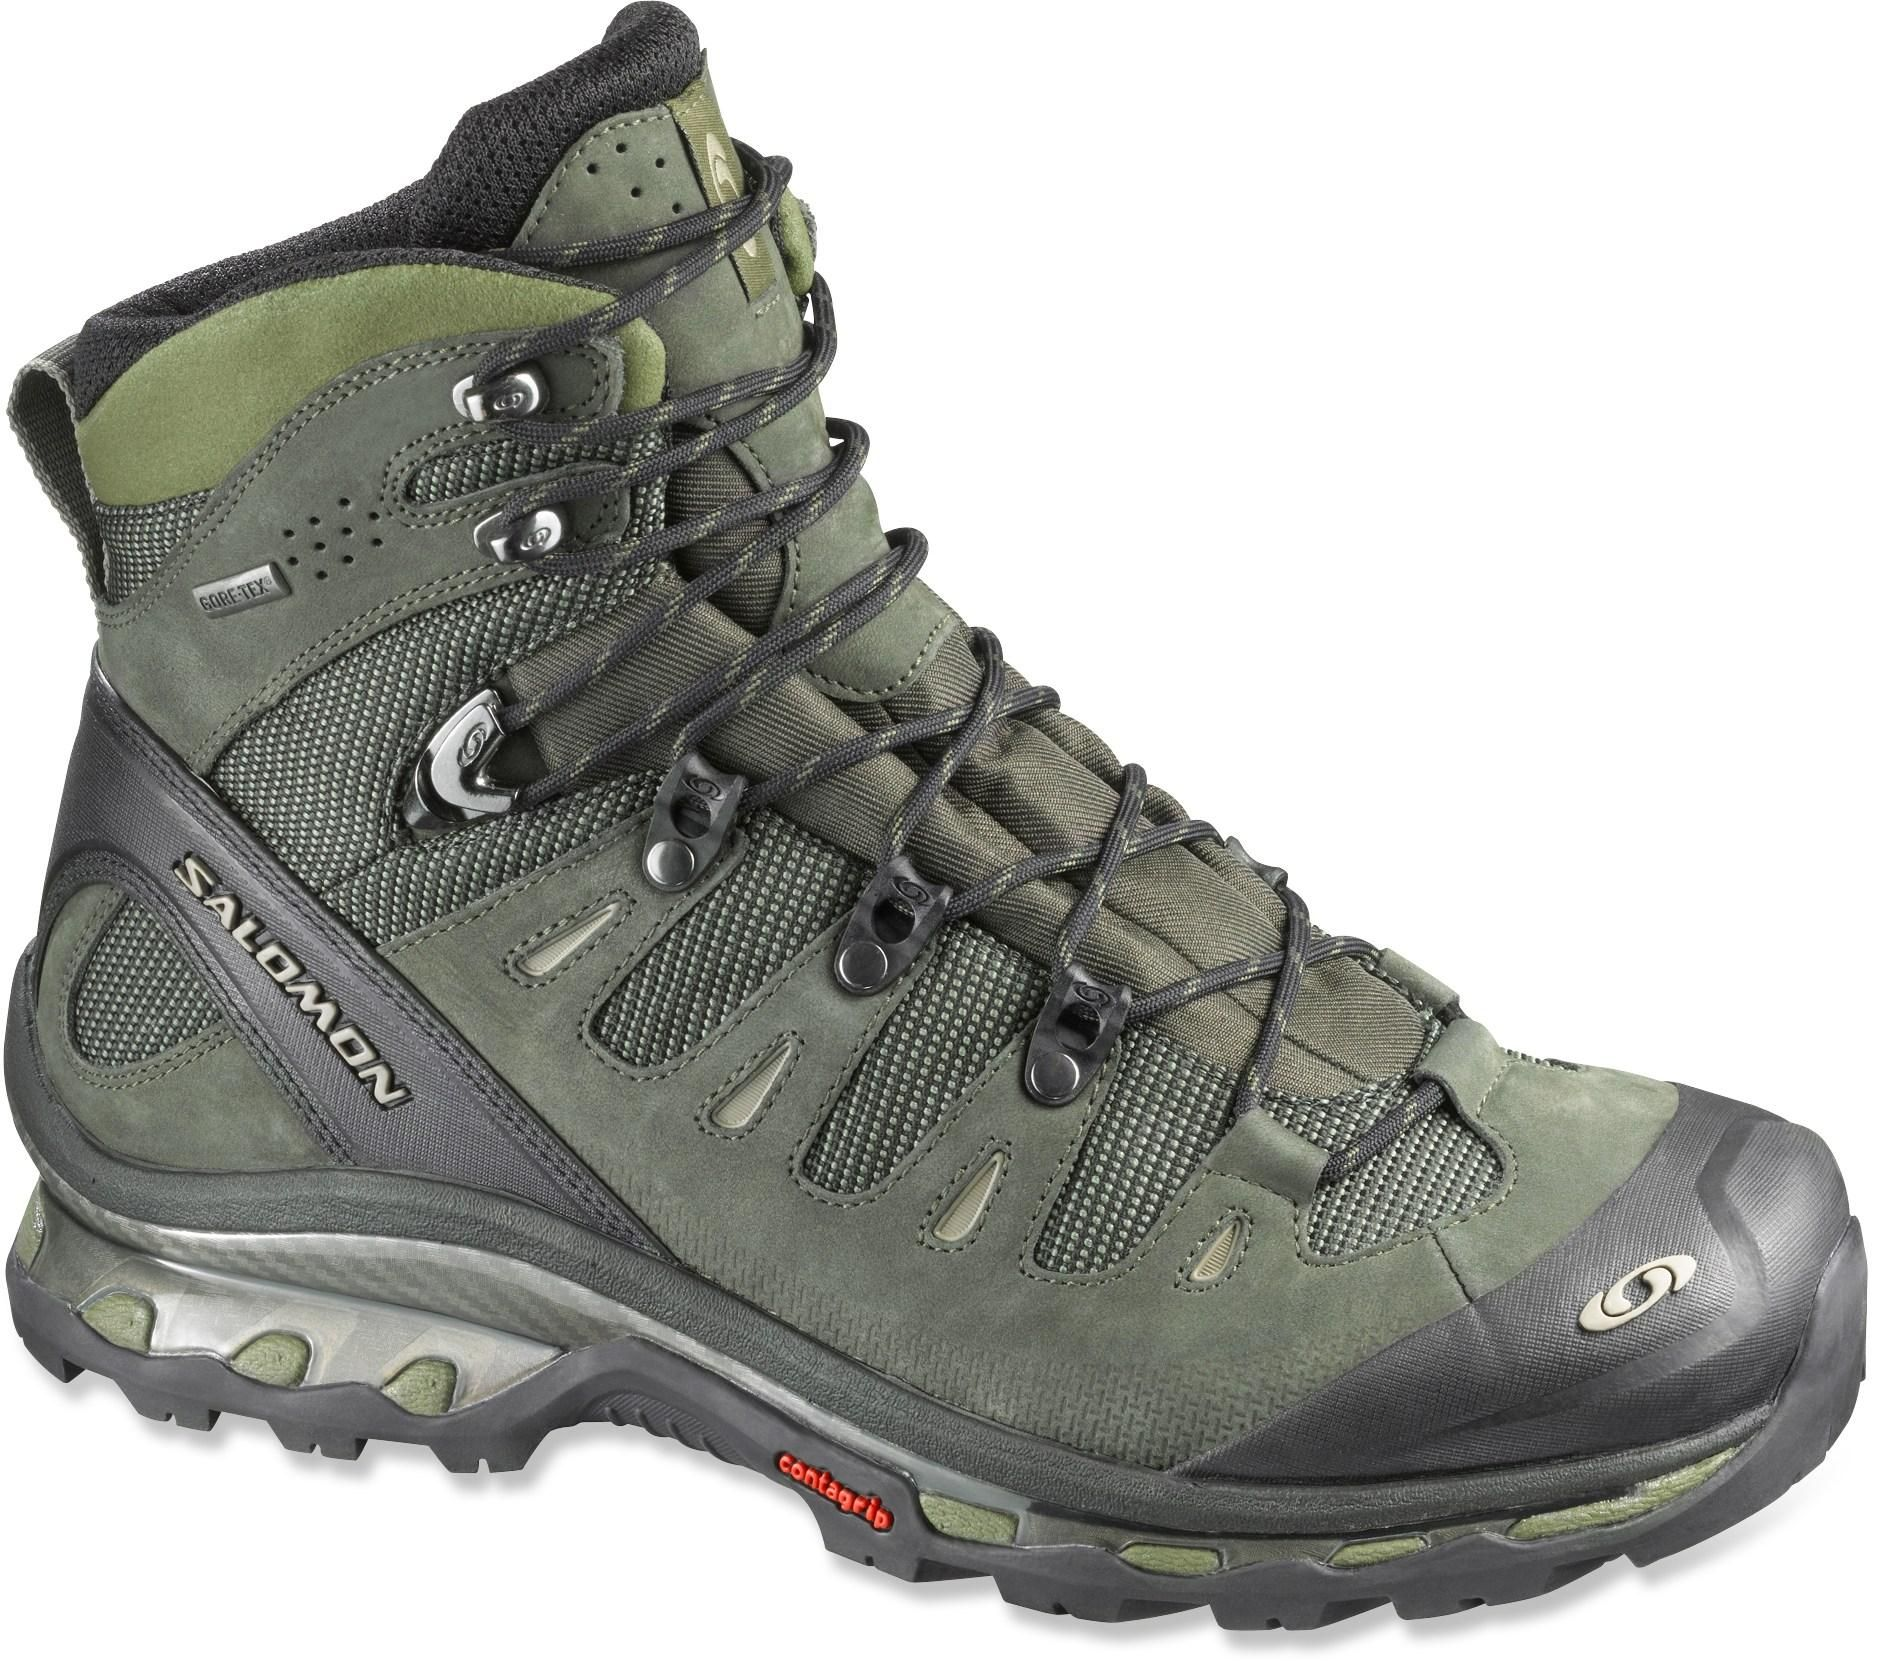 Best Light Hiking Shoes